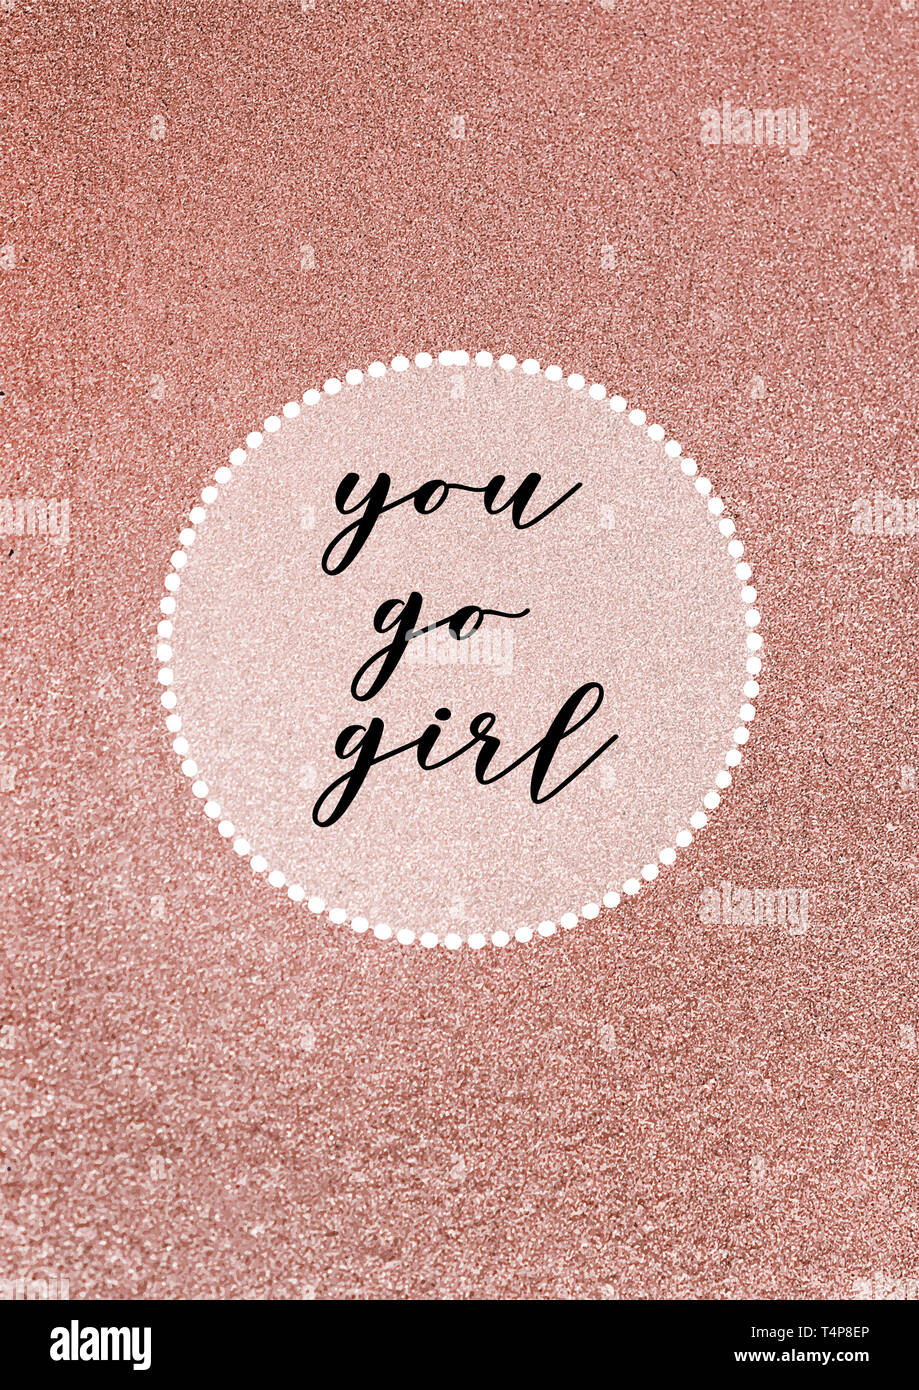 You Go Girl Motivational Girly Quote With Rose Gold Glitter